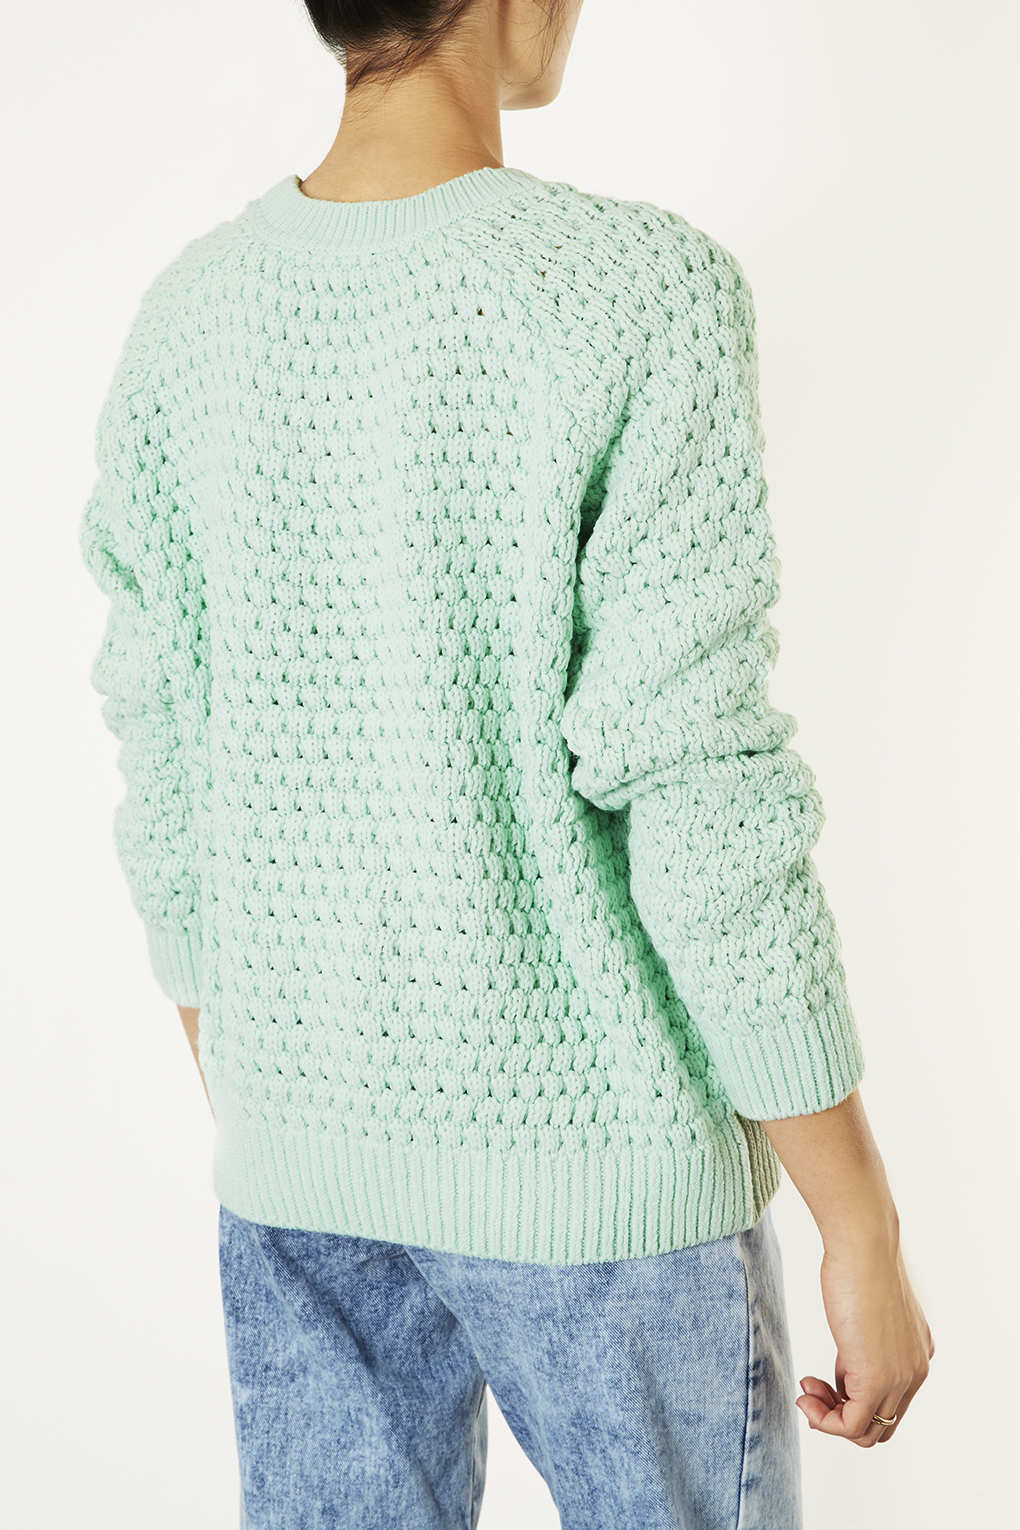 Knitting 3 Stitch Bobble : Topshop Knitted Bobble Stitch Jumper in Green Lyst